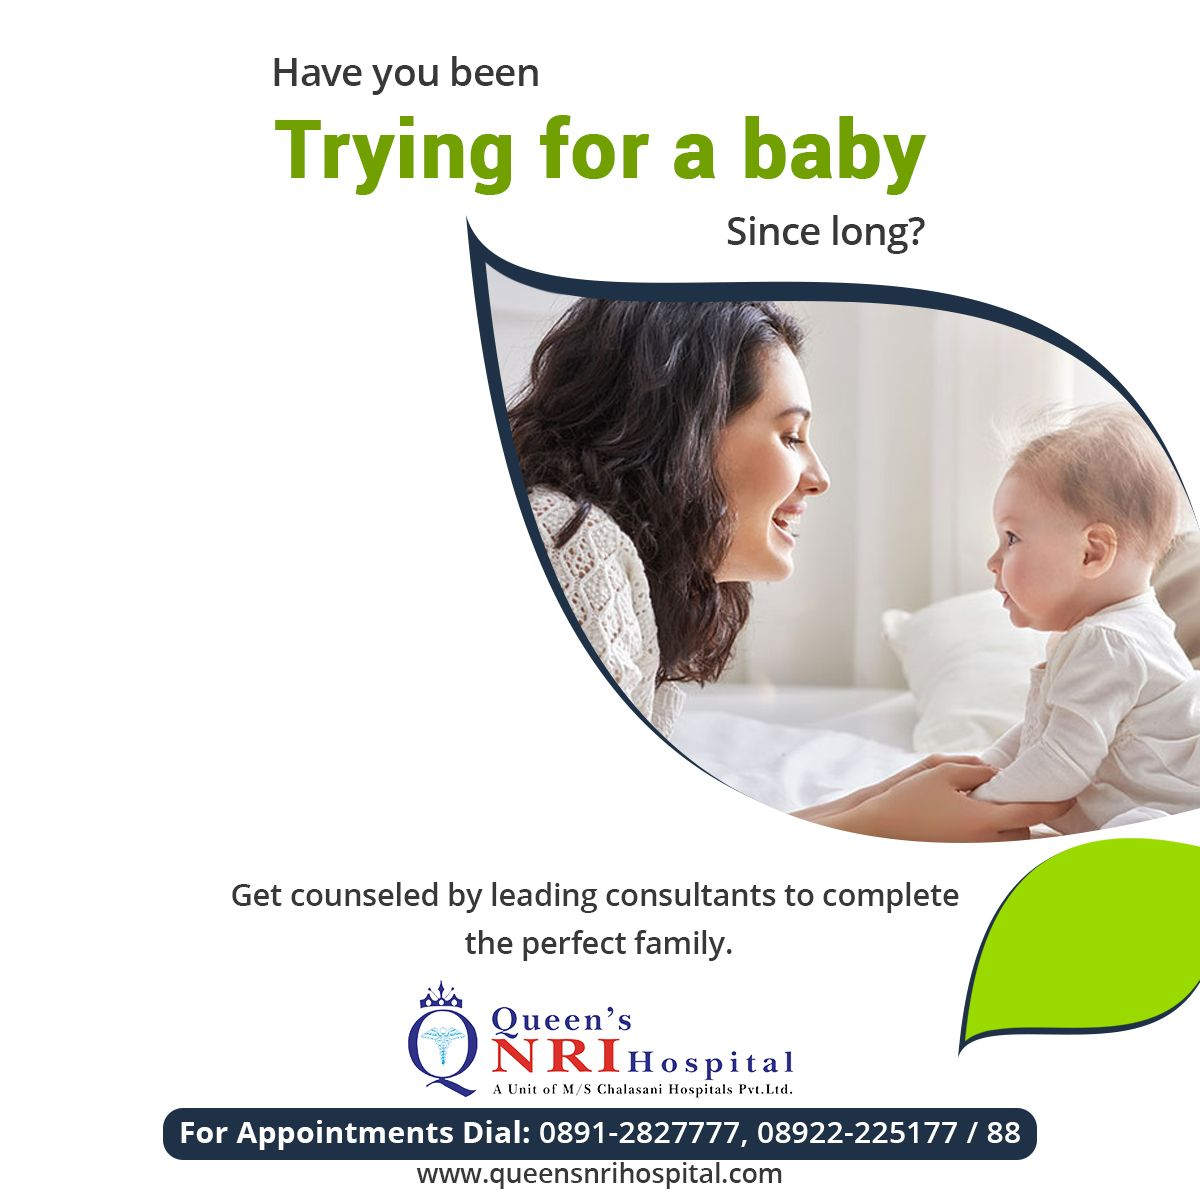 Have you been trying for a baby since long get counseled